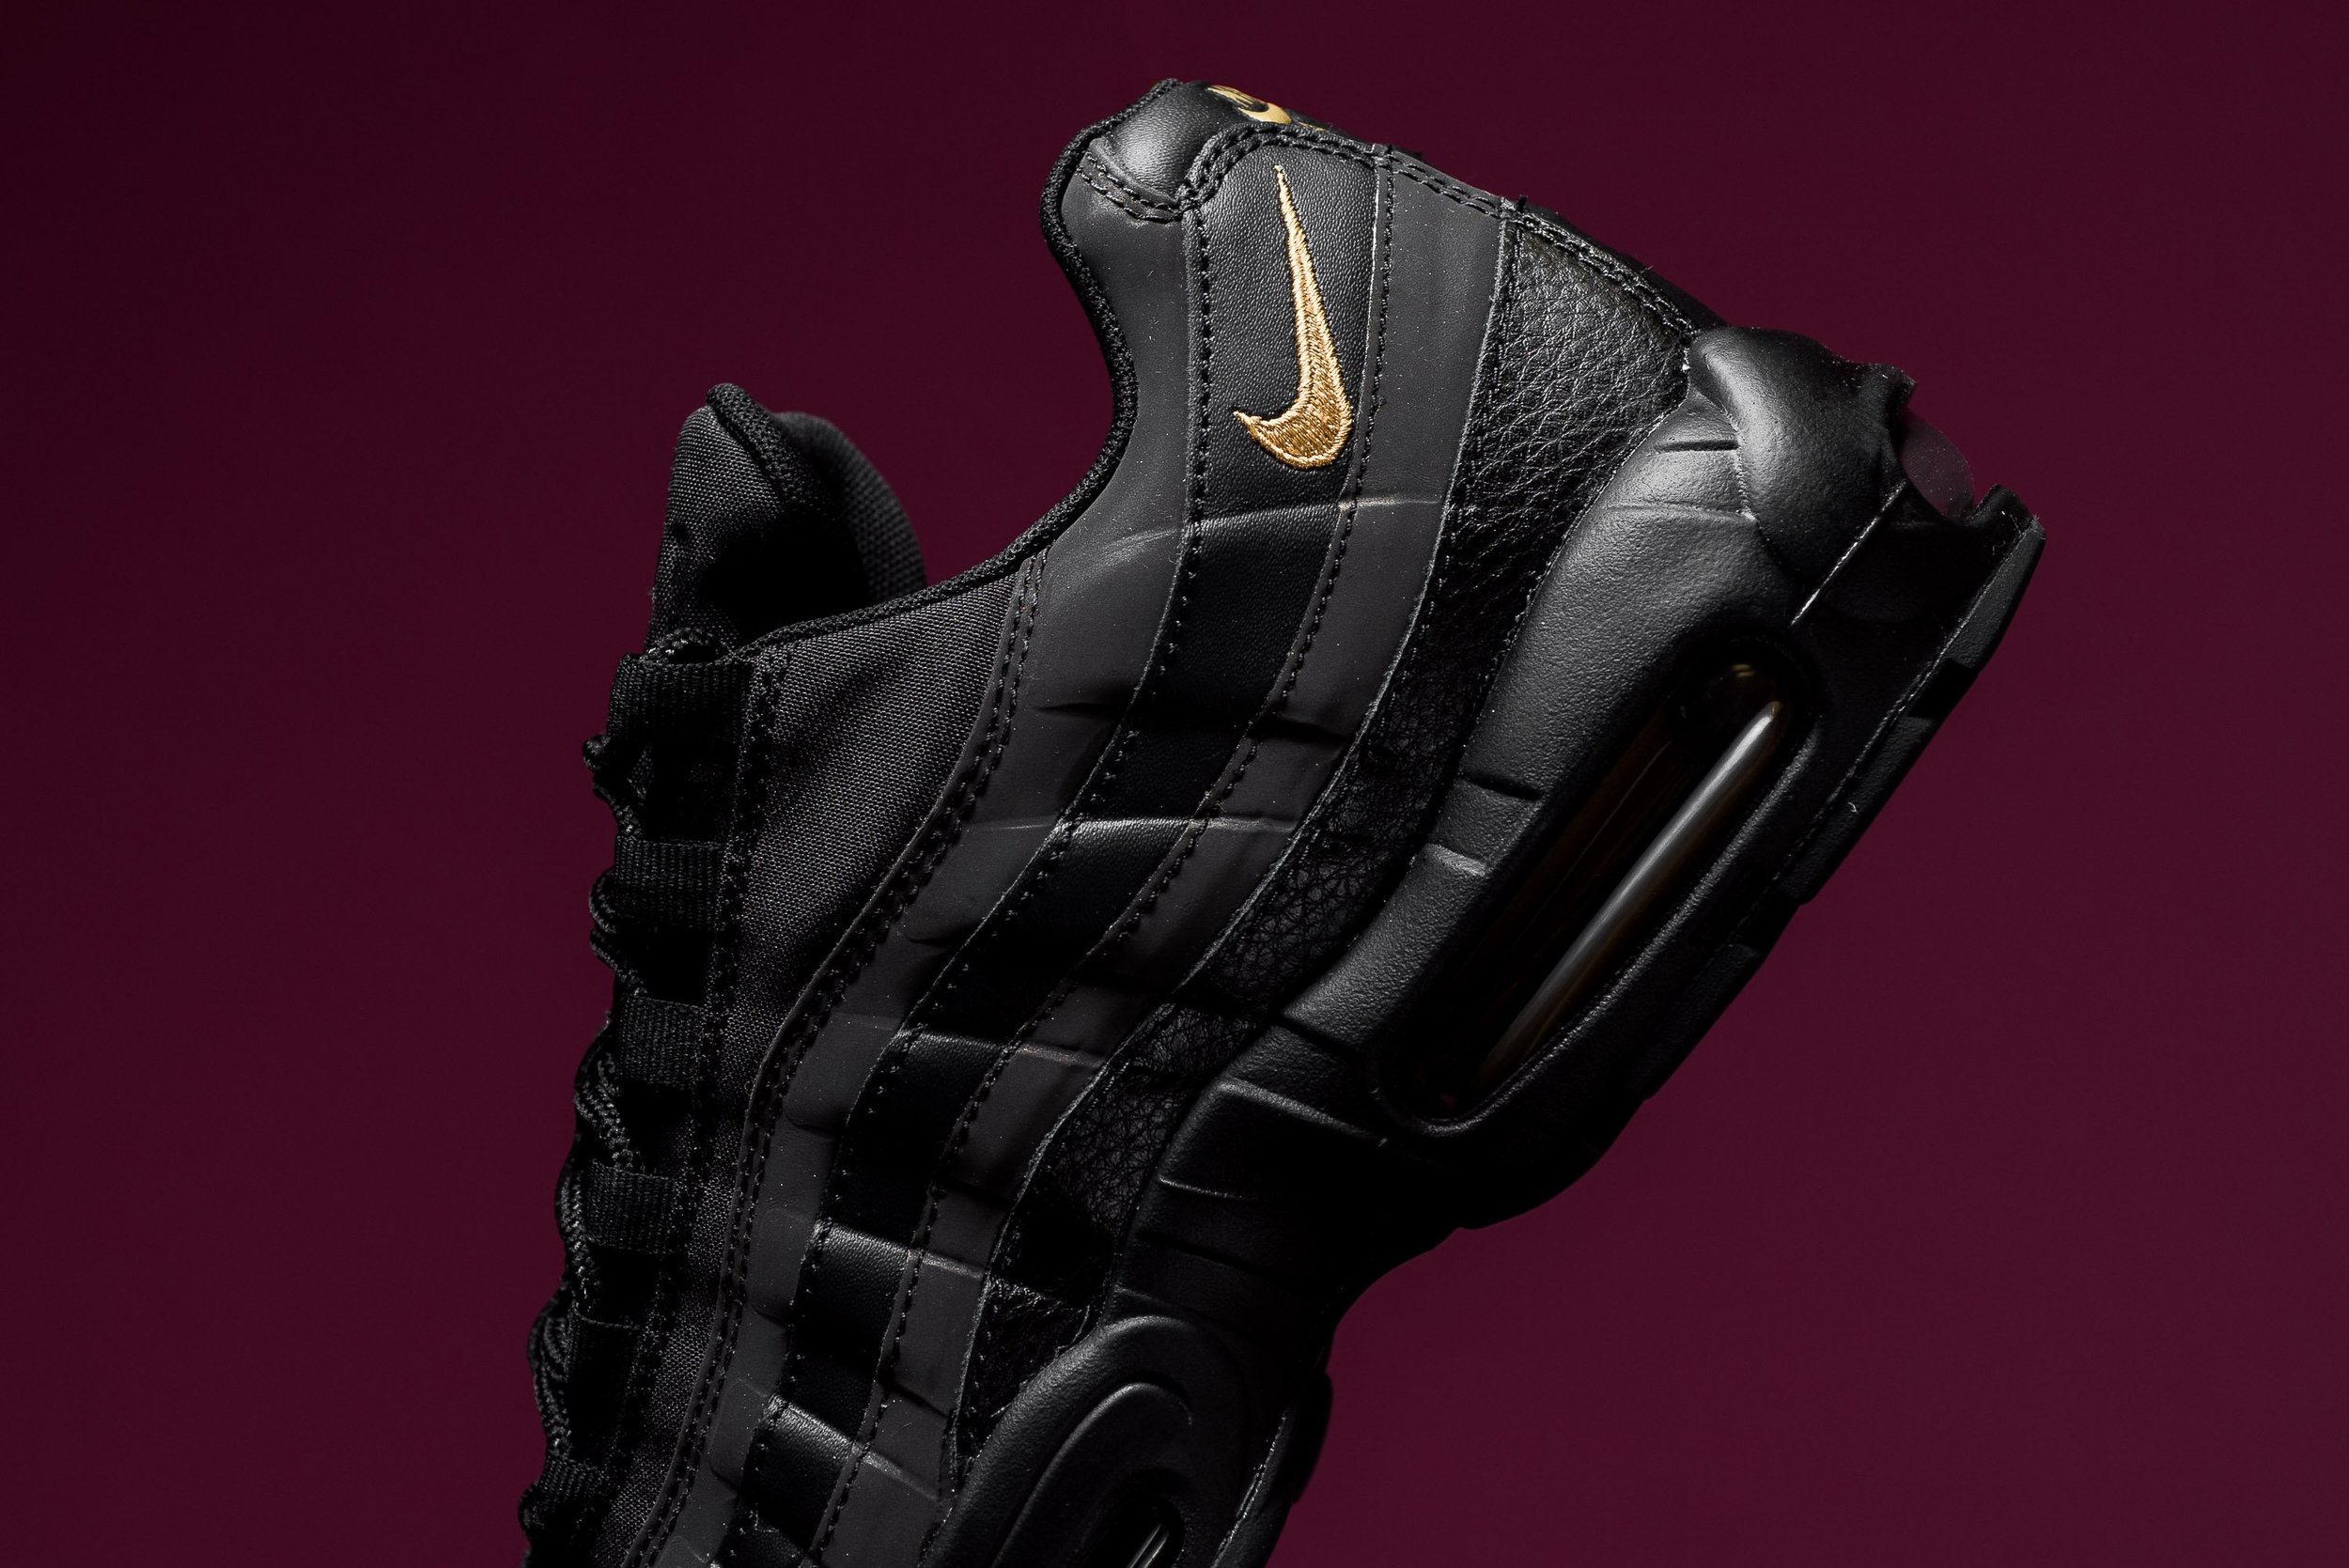 Nike_Air_Max_95_Premium_SE_Black_Metallic_Gold_924478_003_Sneaker_POlitics_-7.jpg